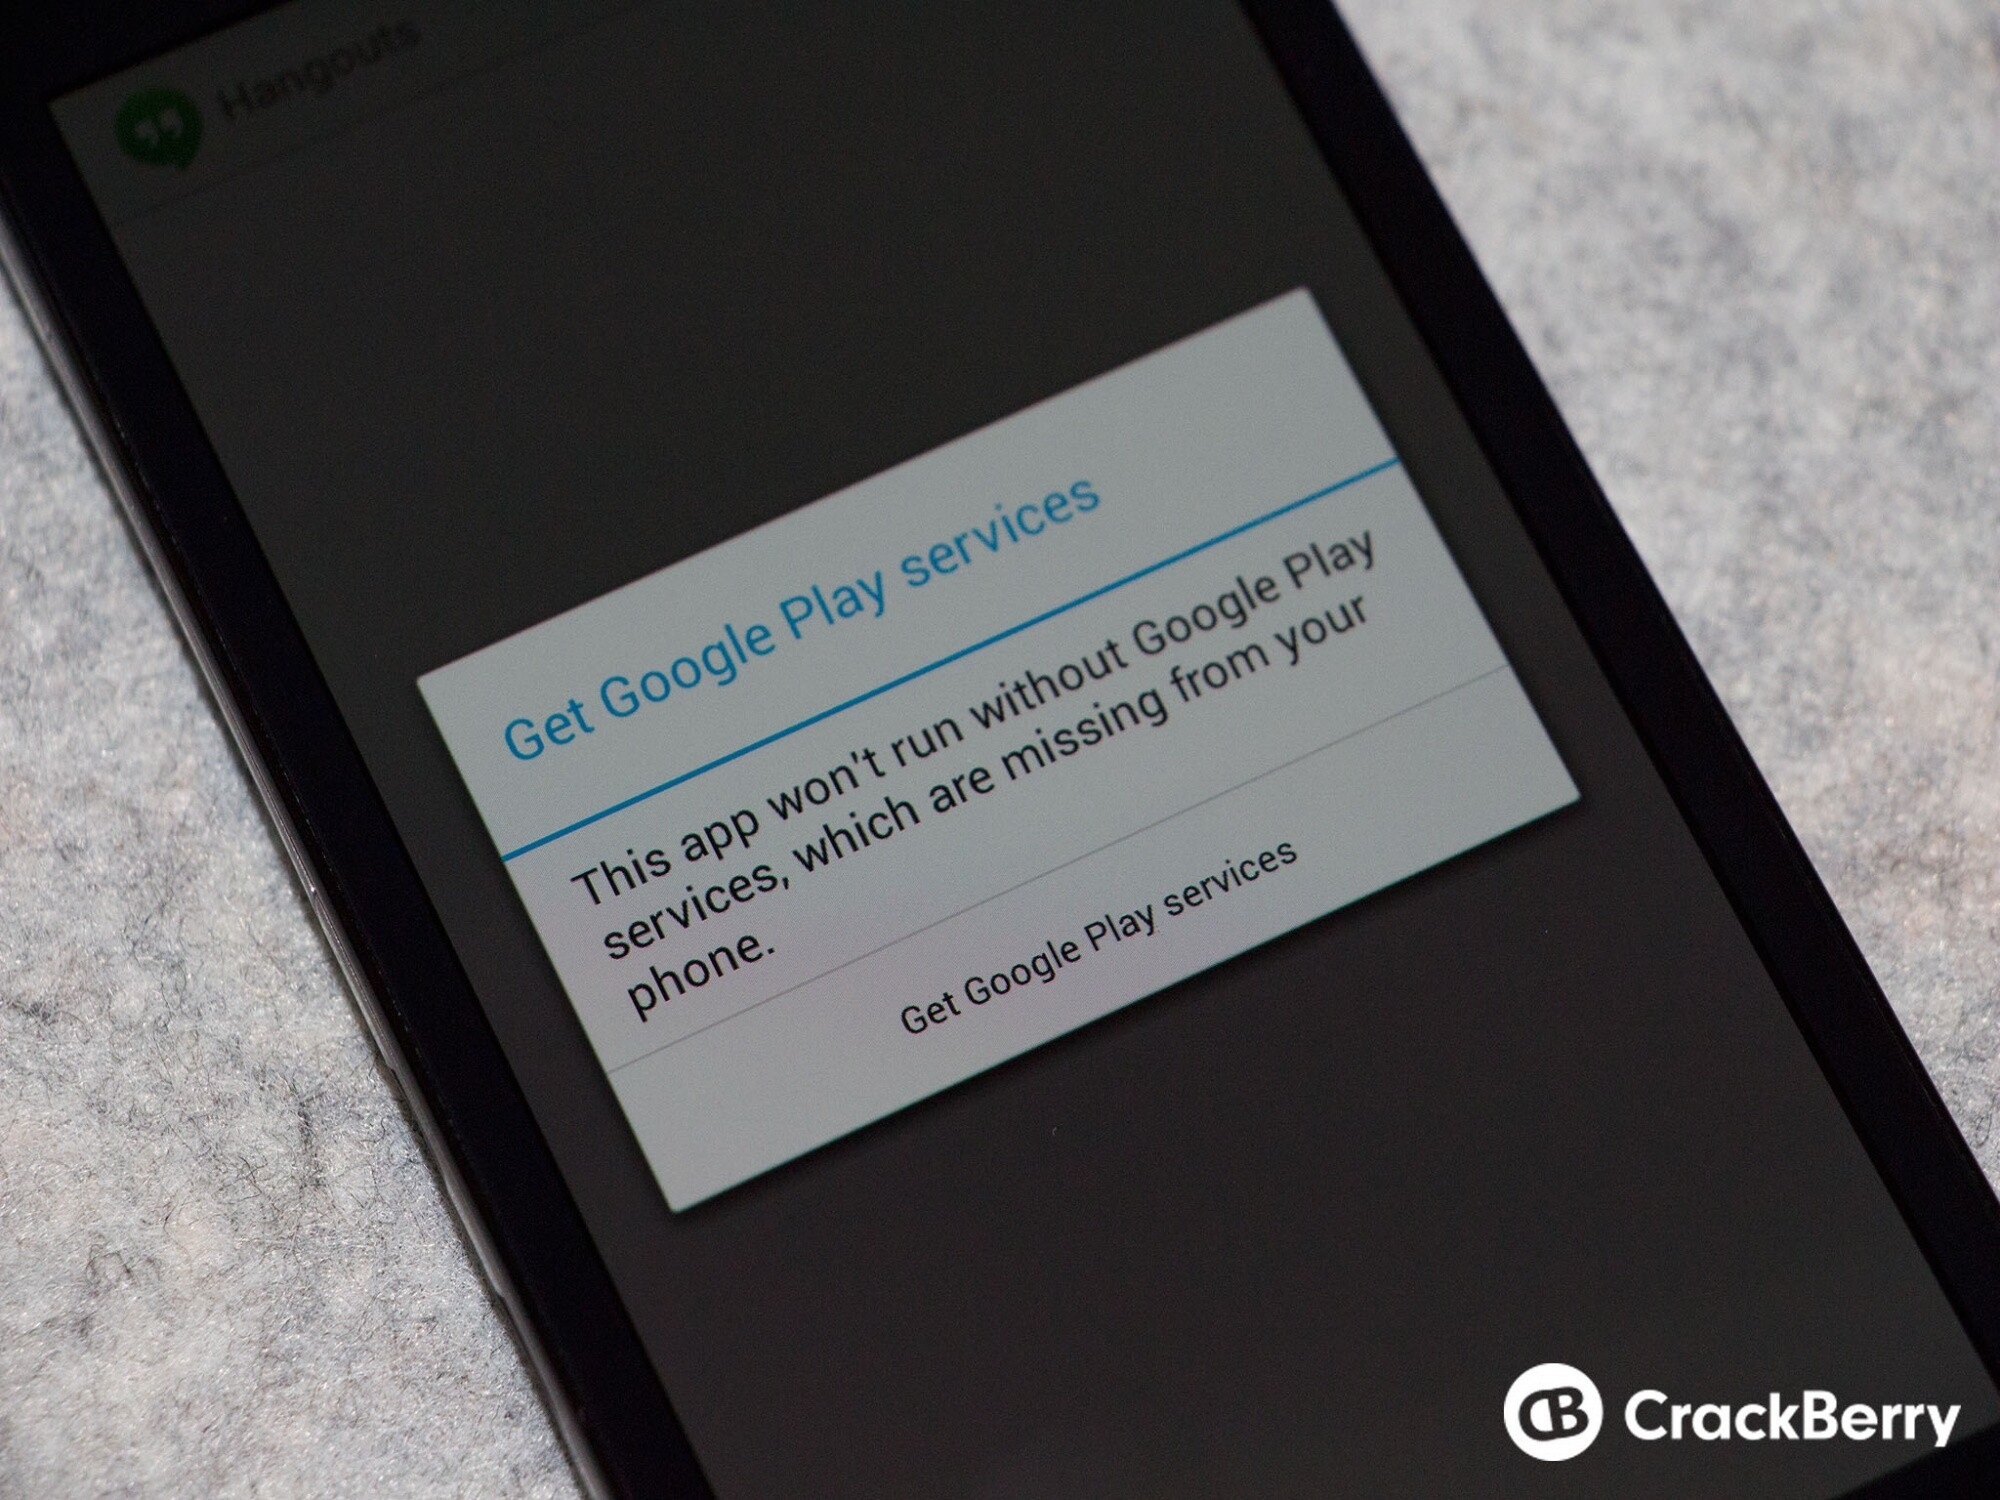 This app won't run without Google Play services error on